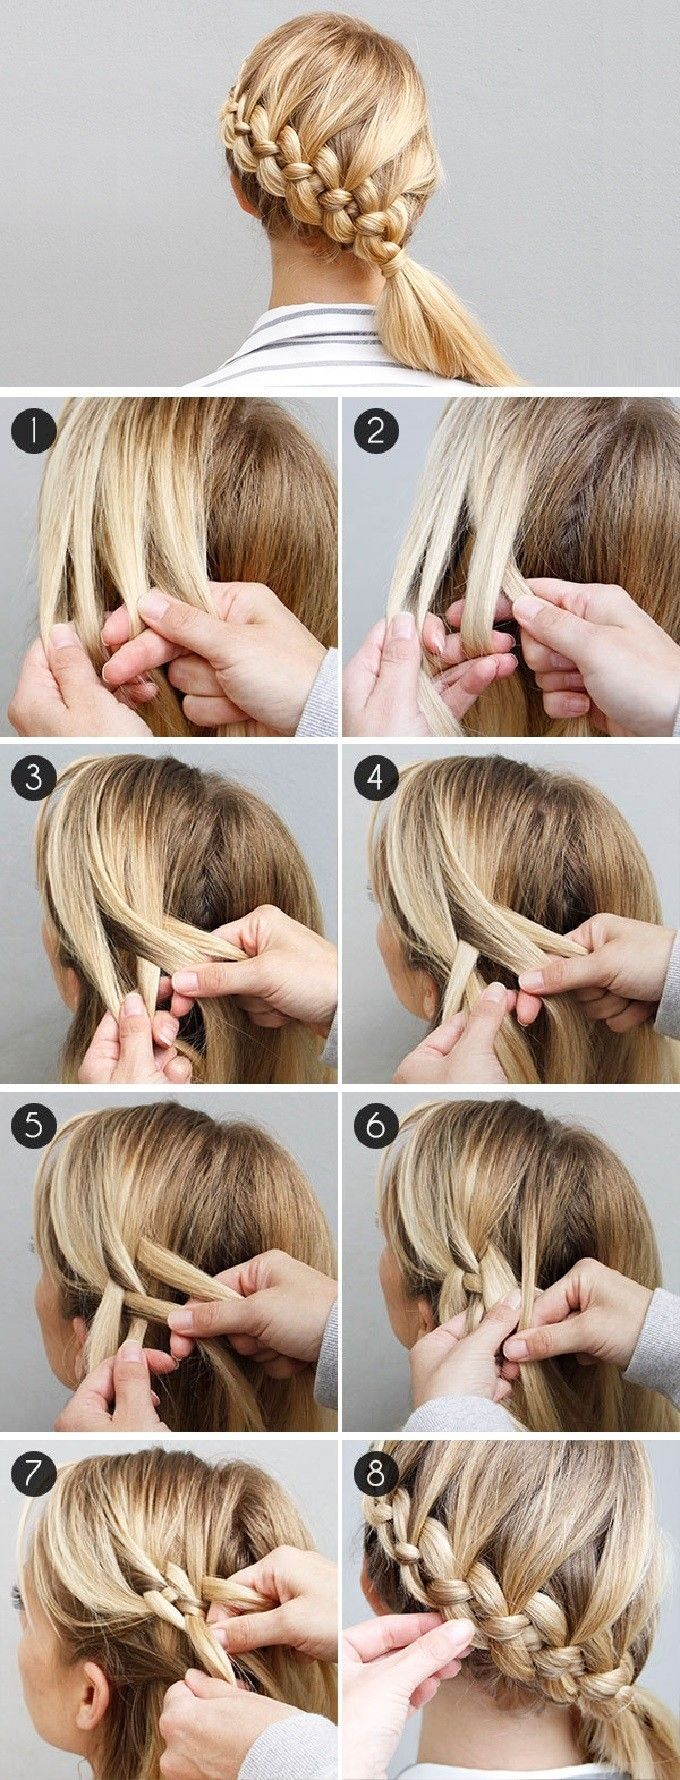 Miraculous Top 25 Best Braids Step By Step Ideas On Pinterest Step By Step Hairstyle Inspiration Daily Dogsangcom